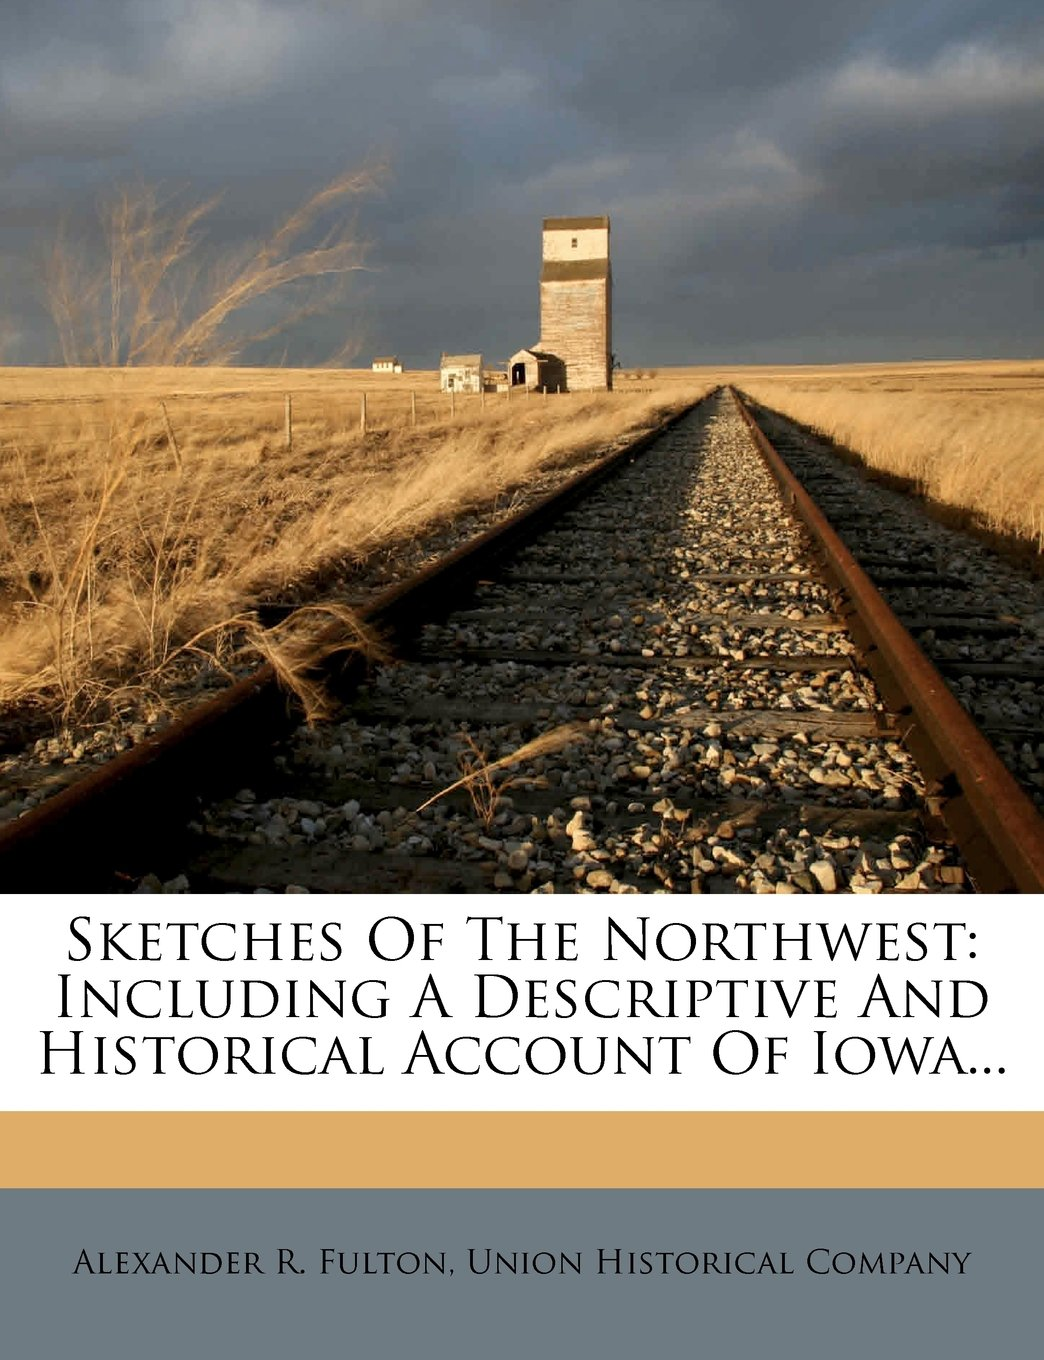 Download Sketches Of The Northwest: Including A Descriptive And Historical Account Of Iowa... pdf